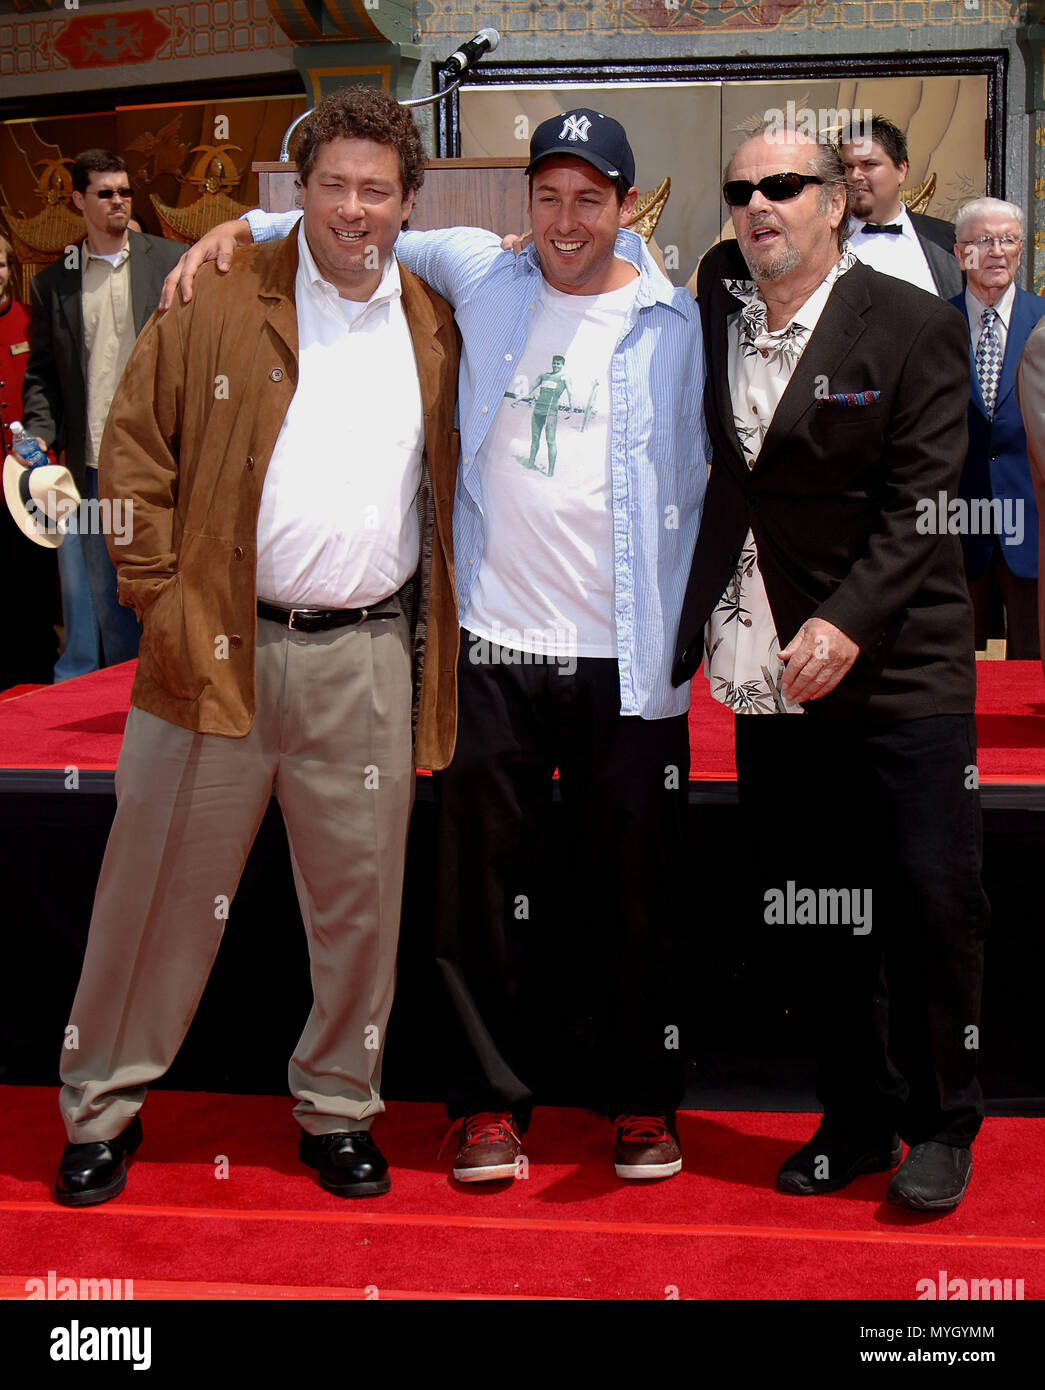 Adam Sandler With His Brother And Jack Nicholson At The Hands And Footprint Ceremony At The Chinese Theatre In Los Angeles May 17 2005 09 Sandlerad Nicholsonj Bro Jpg09 Sandlerad Nicholsonj Bro